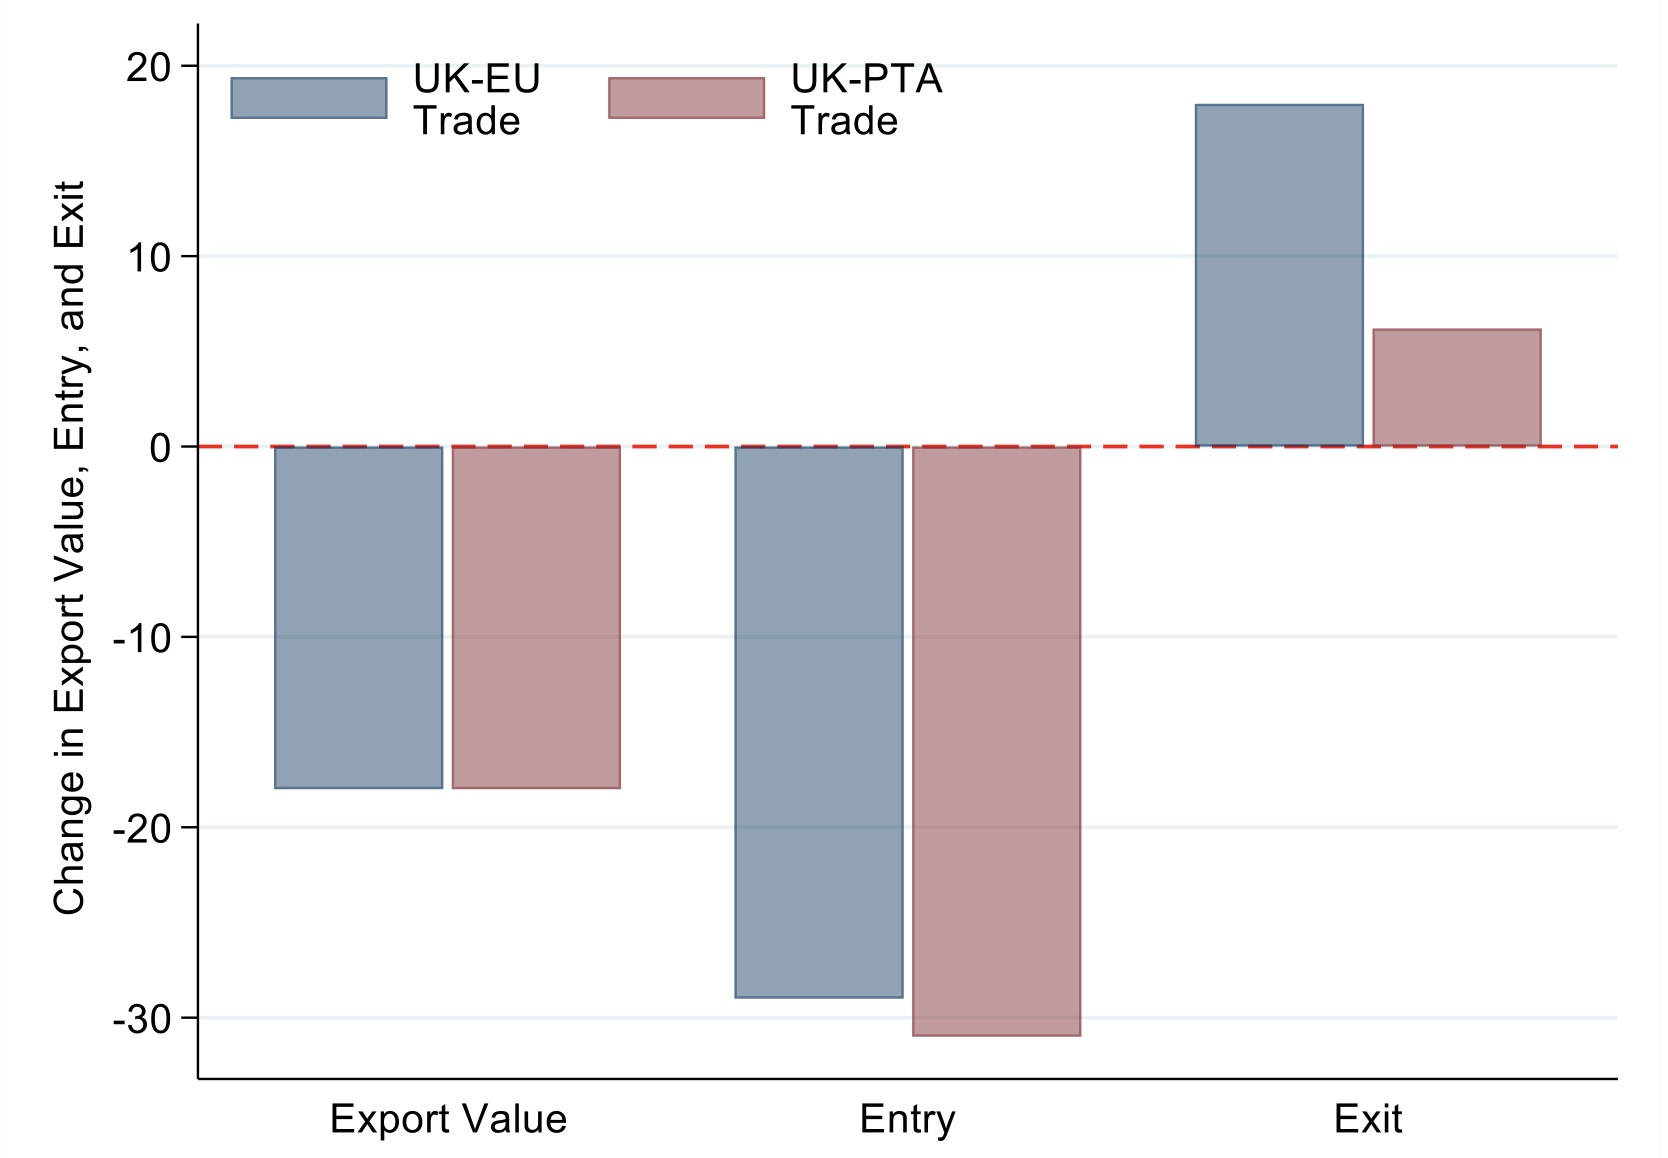 Brexit uncertainty and trade disintegration in Europe and beyond 2